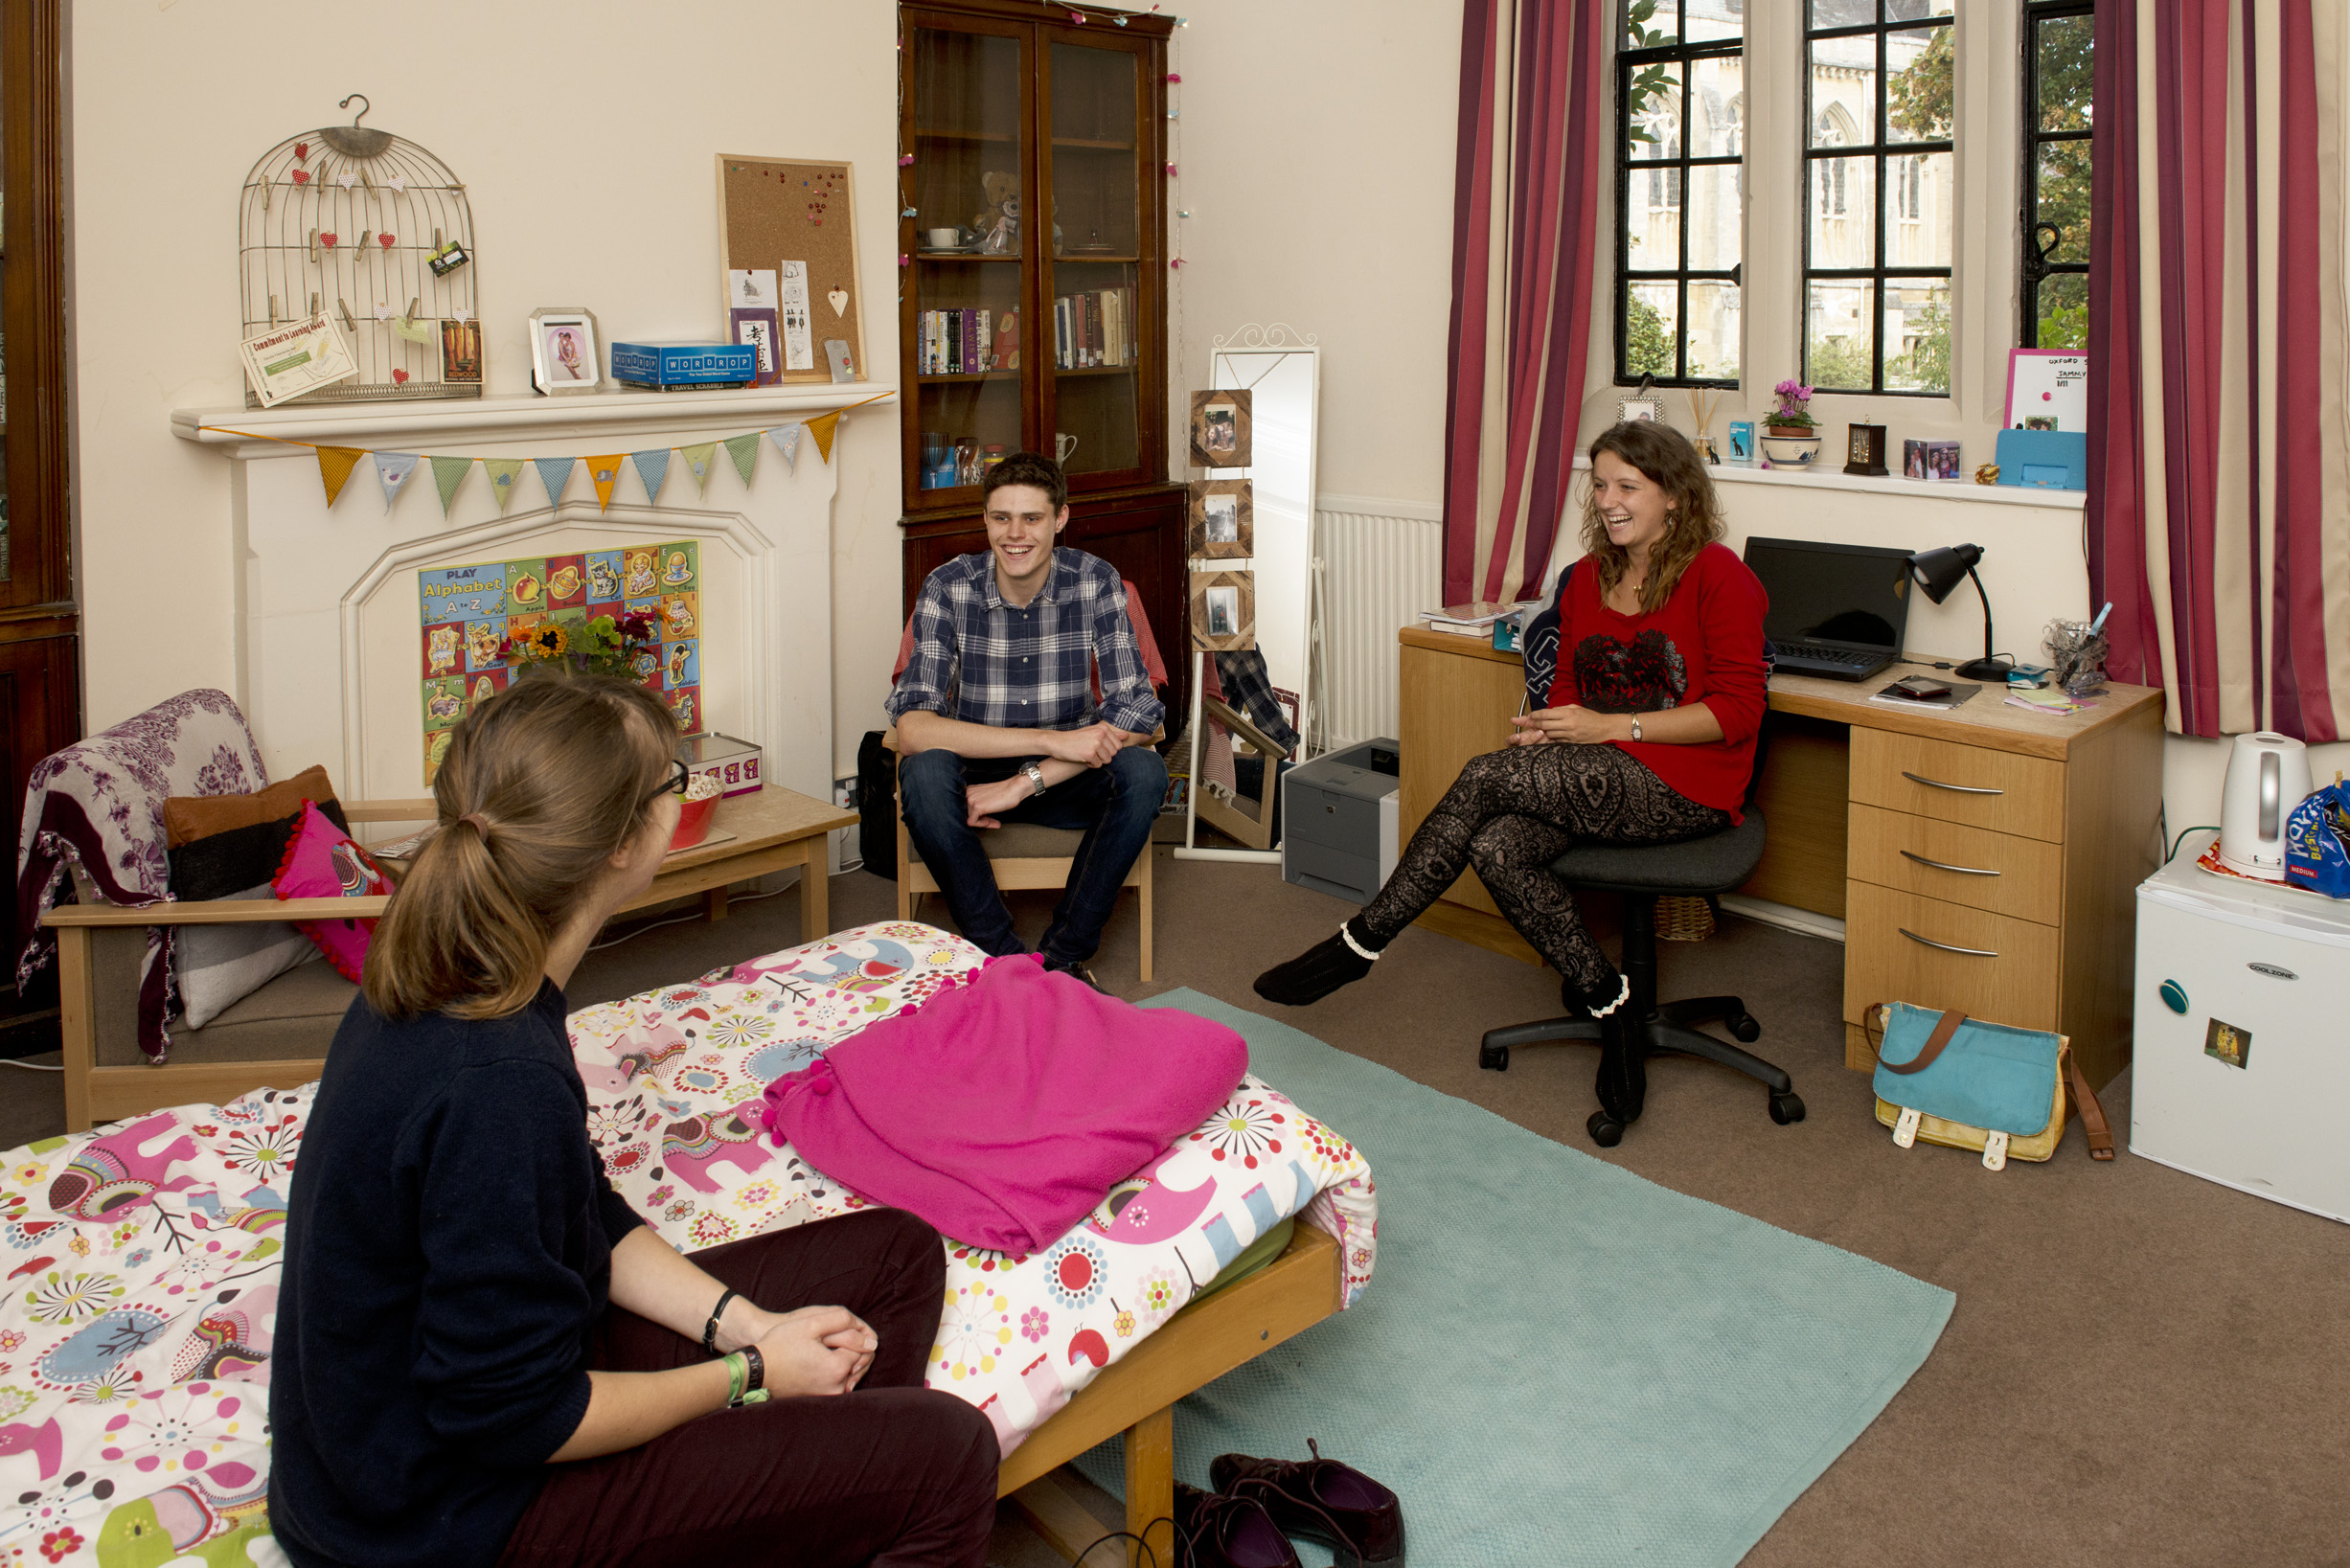 Female student bedroom